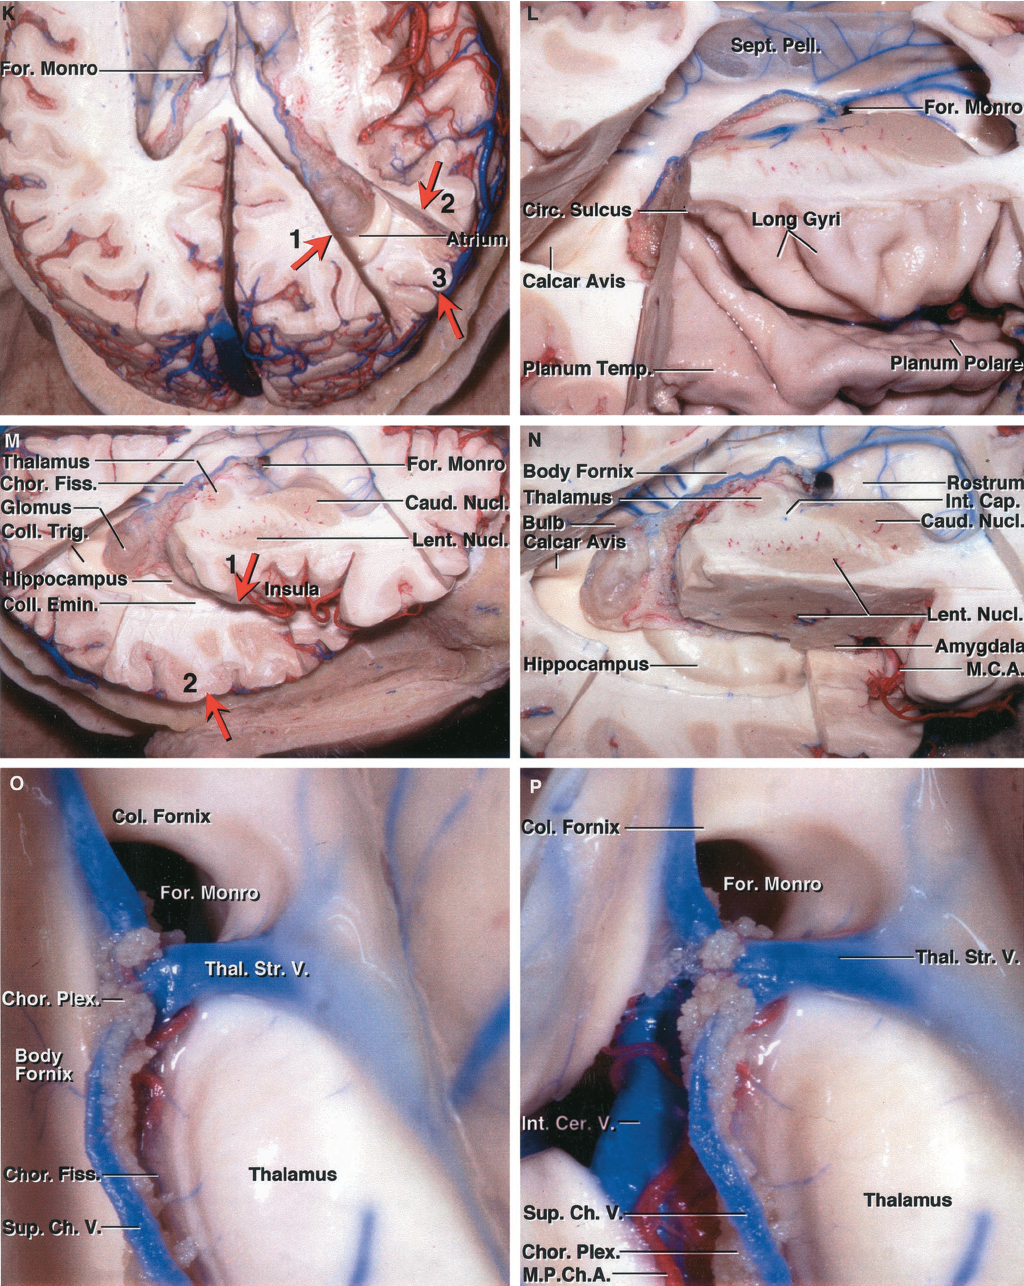 FIGURE 5.3 K-P. K, the initial cut through the hemisphere exposes the frontal horns and bodies of the lateral ventricles. Three cuts, two coronal cuts and one horizontal, are then completed to expose the atrium and posterior part of the temporal horn. The posterior coronal cut (No. 1) is directed obliquely forward along the medial wall of the atrium. The second coronal cut (No. 2) crosses the hemisphere at the anterior part of the atrium just behind the pulvinar. The horizontal cut (No. 3) is located at the level of the floor of the atrium. The three cuts expose the atrium from the pulvinar back to the medial wall. L, superolateral view obtained with cuts shown in K. M, the temporal horn is exposed using two cuts. One (No. 1) is directed through the lower margin of the circular sulcus to the temporal horn, and the second is a transverse cut (No. 2) located at the level of the floor of the temporal horn. Removing the block of tissue between the two cuts exposes the temporal horn. The collateral eminence overlying the deep end of the collateral sulcus is well seen, but it is difficult to see the hippocampus because it is located further medially below the insula and lentiform nucleus. N, a sagittal cut medial to the insula exposes the lentiform nucleus. The incision extends through the lentiform nucleus and amygdala. The full length of the choroidal fissure from the foramen of Monro to the inferior choroidal point, located behind the head of the hippocampus, is exposed. The bulb of the corpus callosum overlying the forceps major and the calcar avis overlying the deep end of the calcarine sulcus are exposed in the medial wall of the atrium. O, enlarged view of the foramen of Monro. The columns of the fornix pass around the superior and anterior margins of the foramen of Monro. The anterior nucleus of the thalamus sits in the posterior margin of the foramen of Monro. The thalamostriate vein passes forward between the caudate nucleus and thalamus and through the posterio